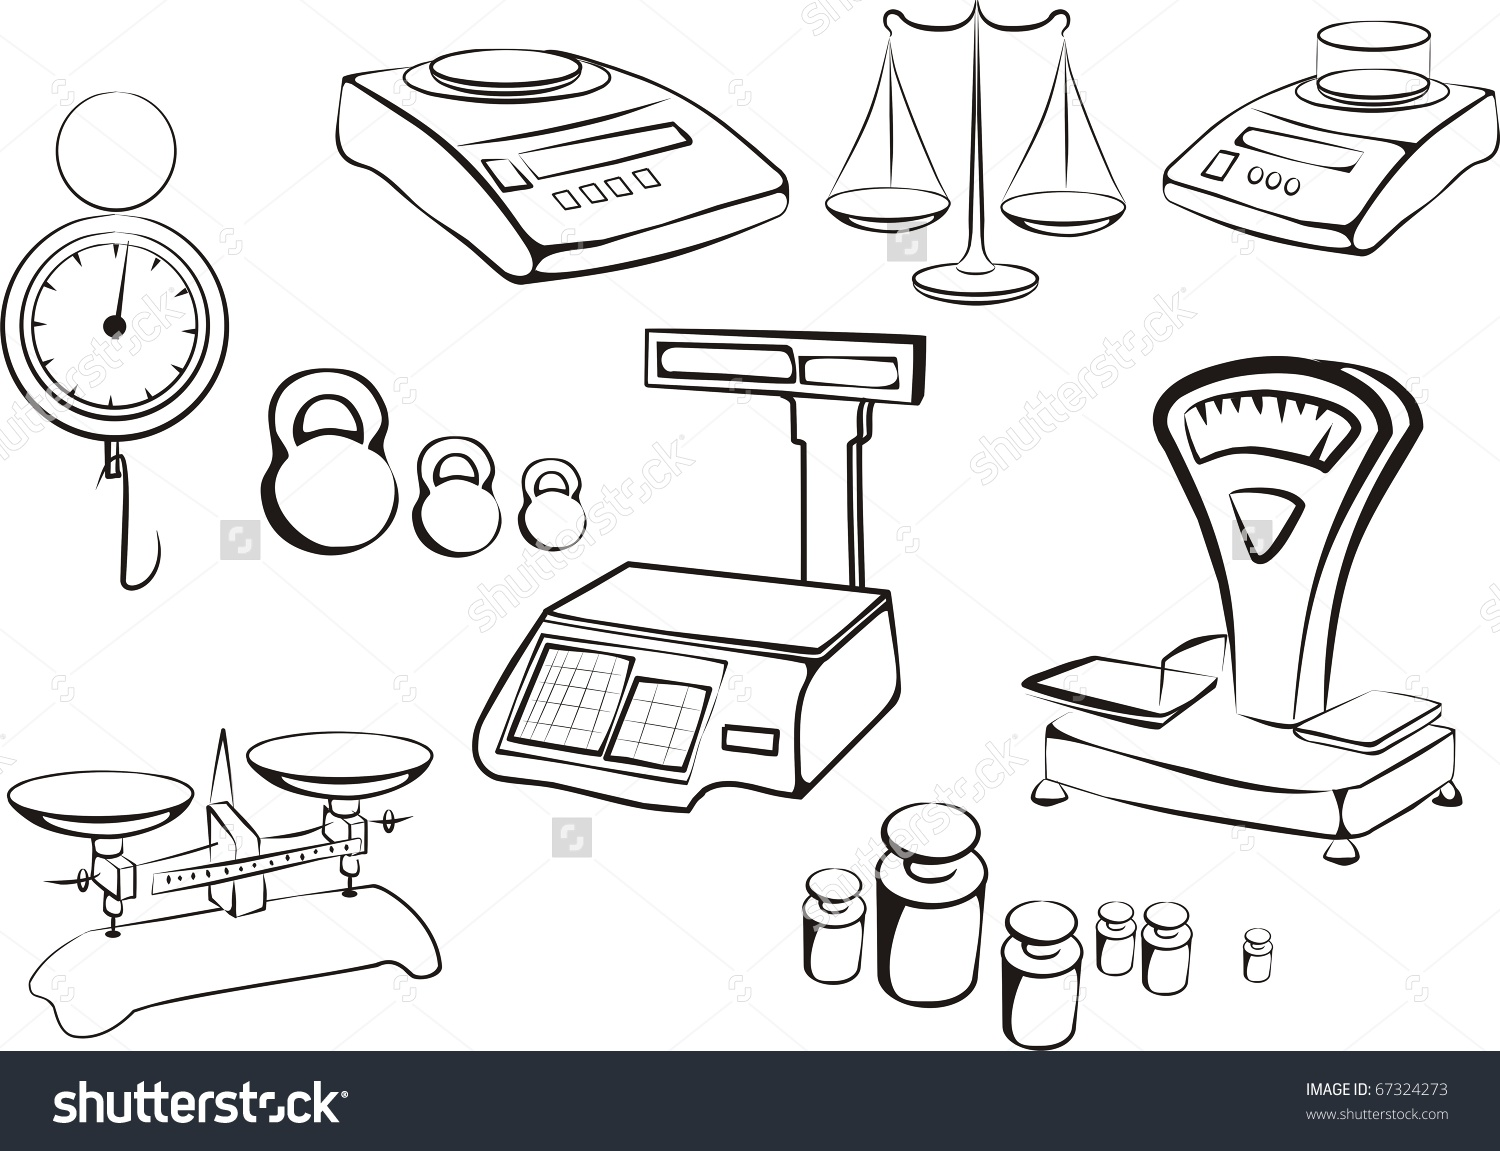 Set Different Libra Weight Measuring Instruments Stock Vector.